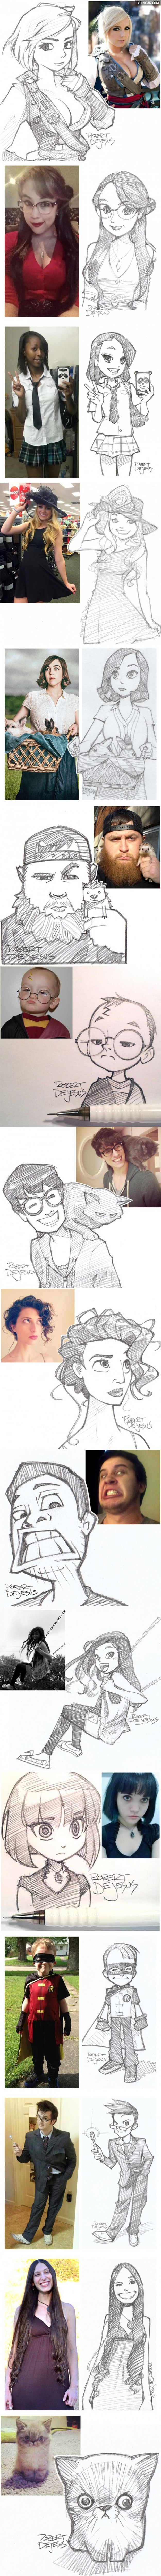 People And Their Cartoon Version § Find more artworks: :